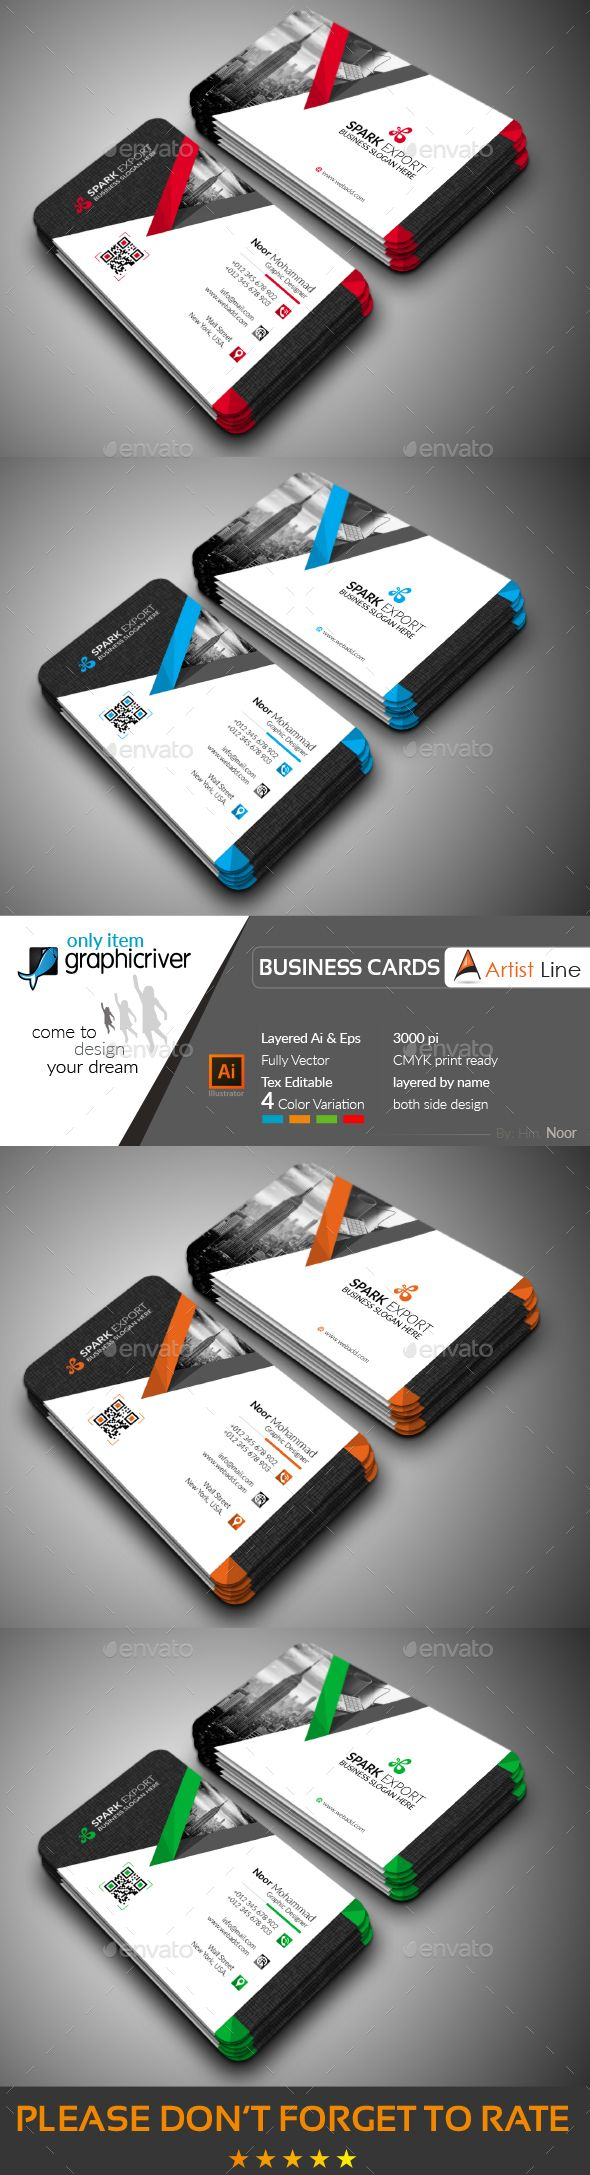 Modern business card business cards print templates business modern business card business cards print templates wajeb Image collections